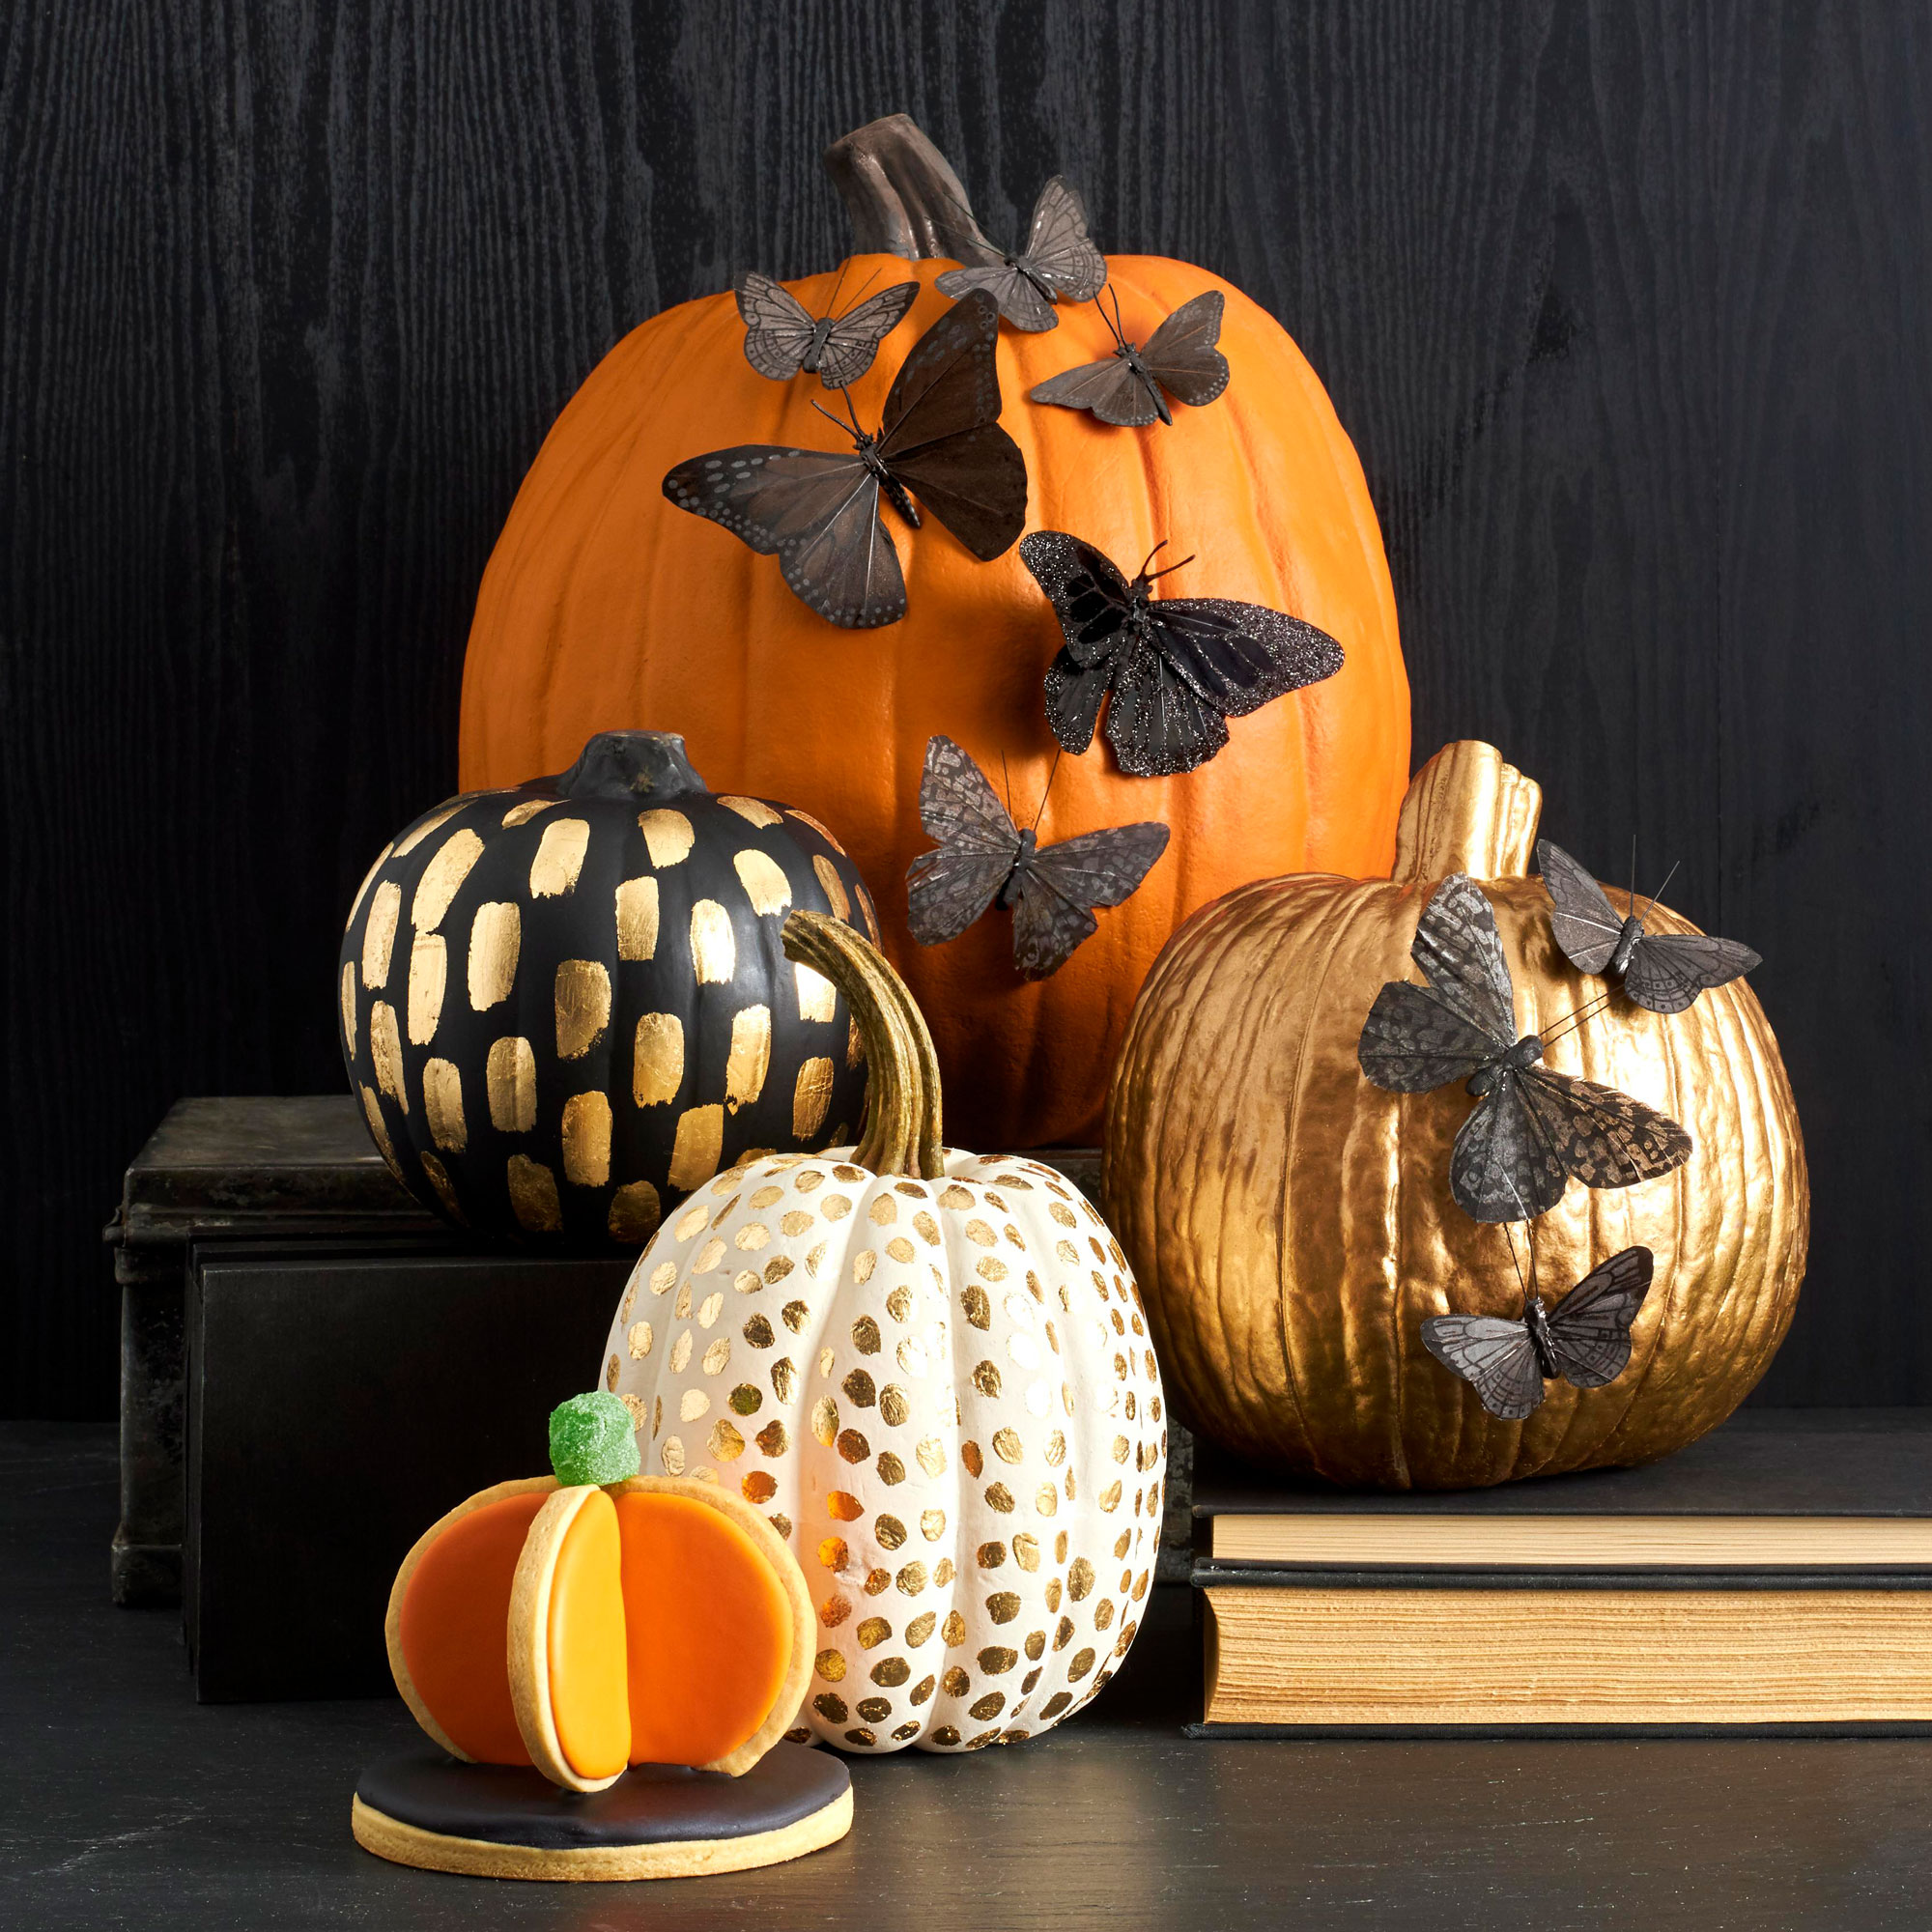 No-carve decorating